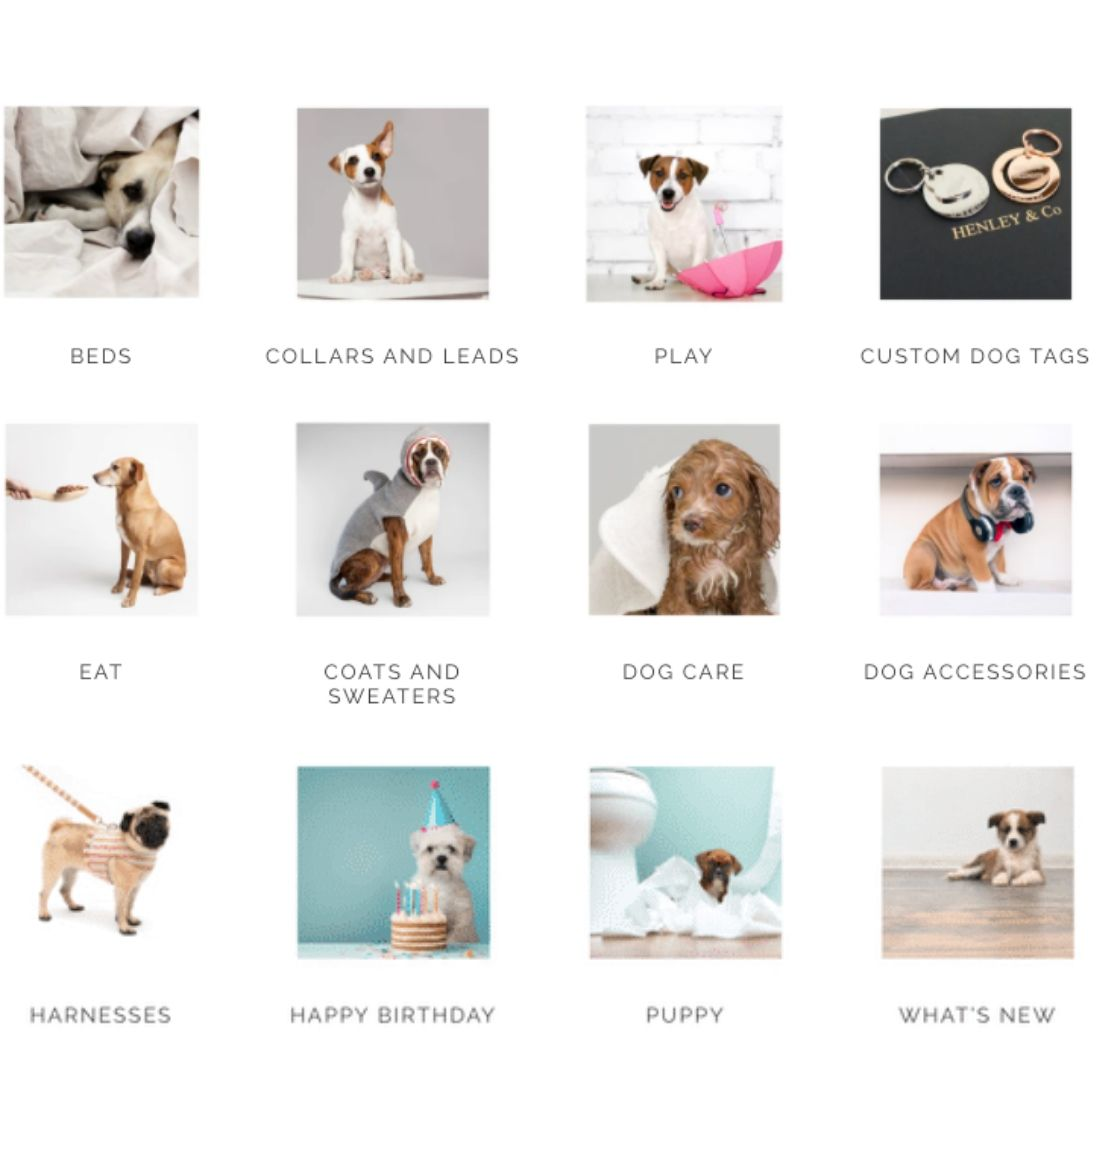 Henley and Co product categories with pictures of cute dogs